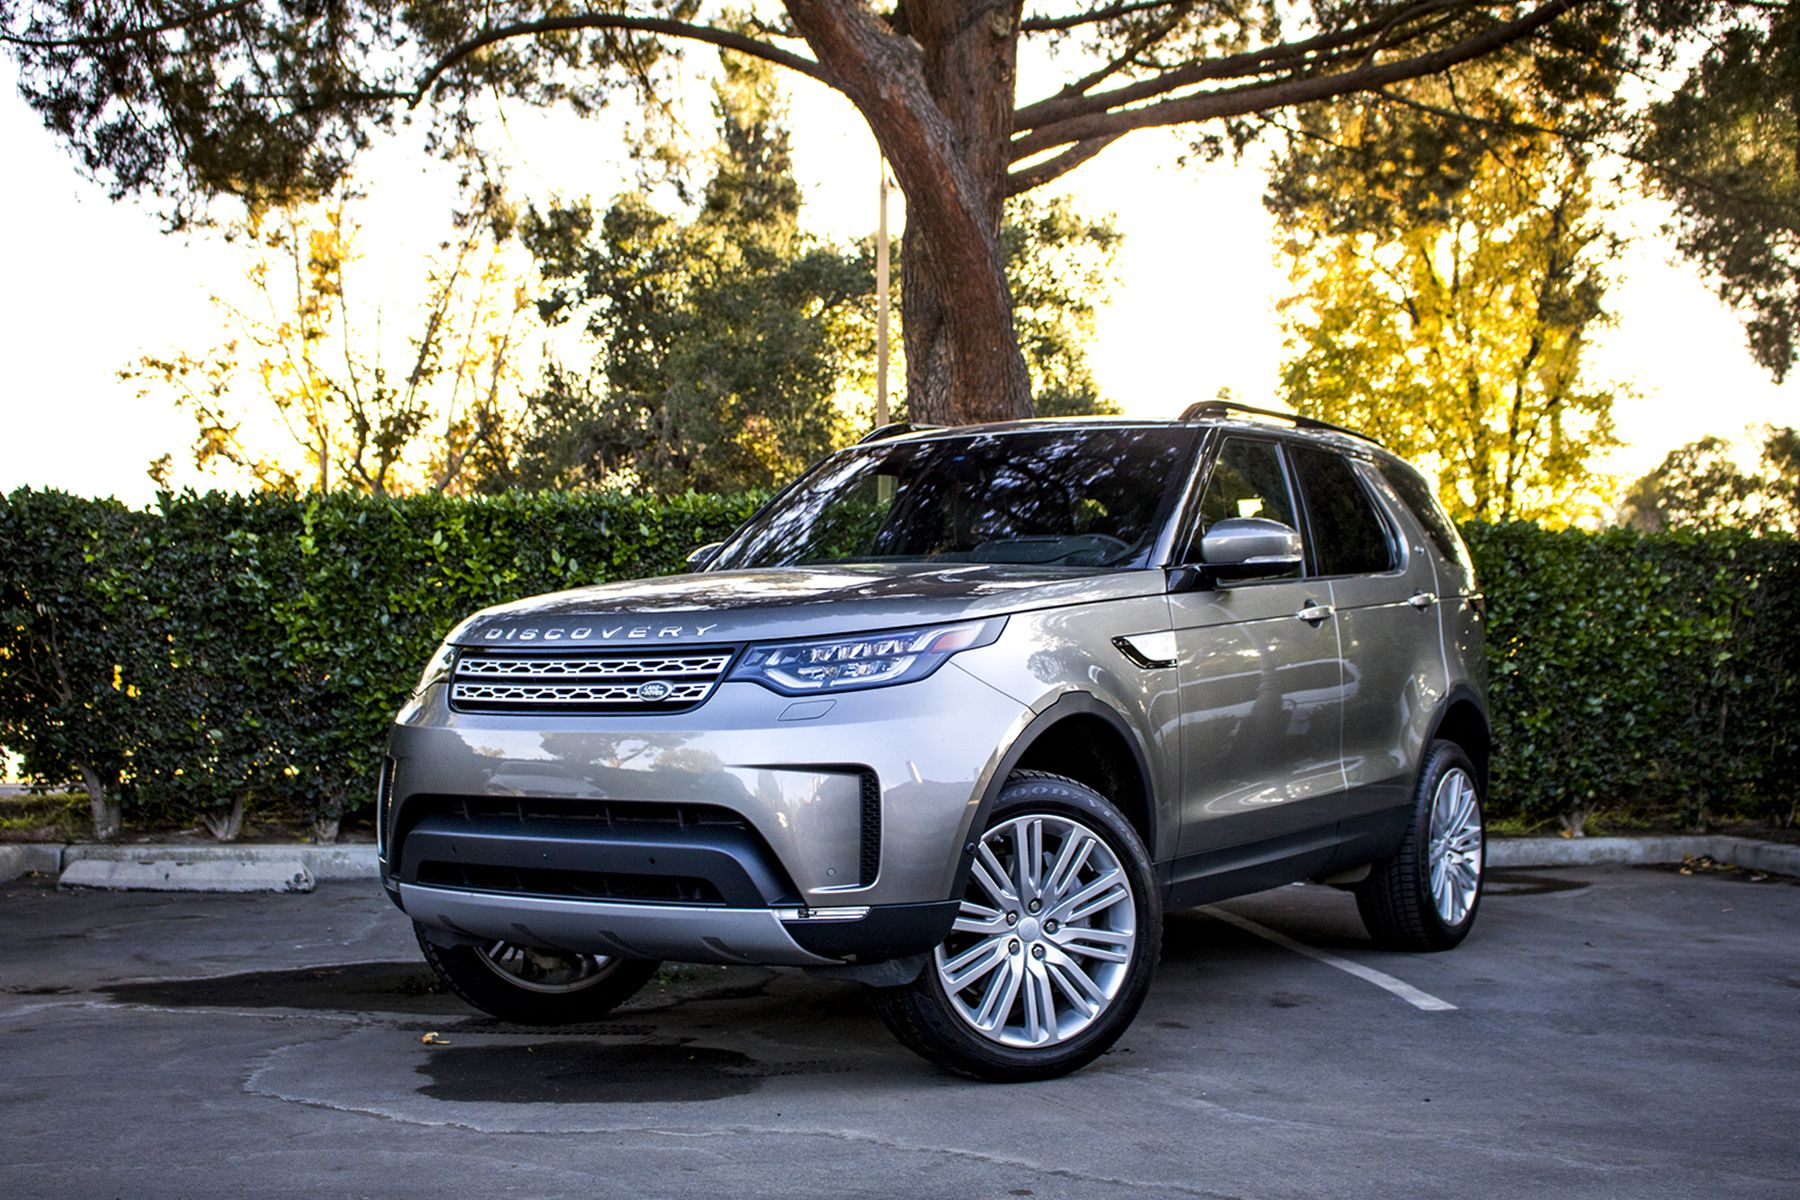 2018 Land Rover Discovery Hse Luxury Review Disco Never Dies At Least In The Suv World Land Rover Discovery Hse Land Rover Discovery Land Rover